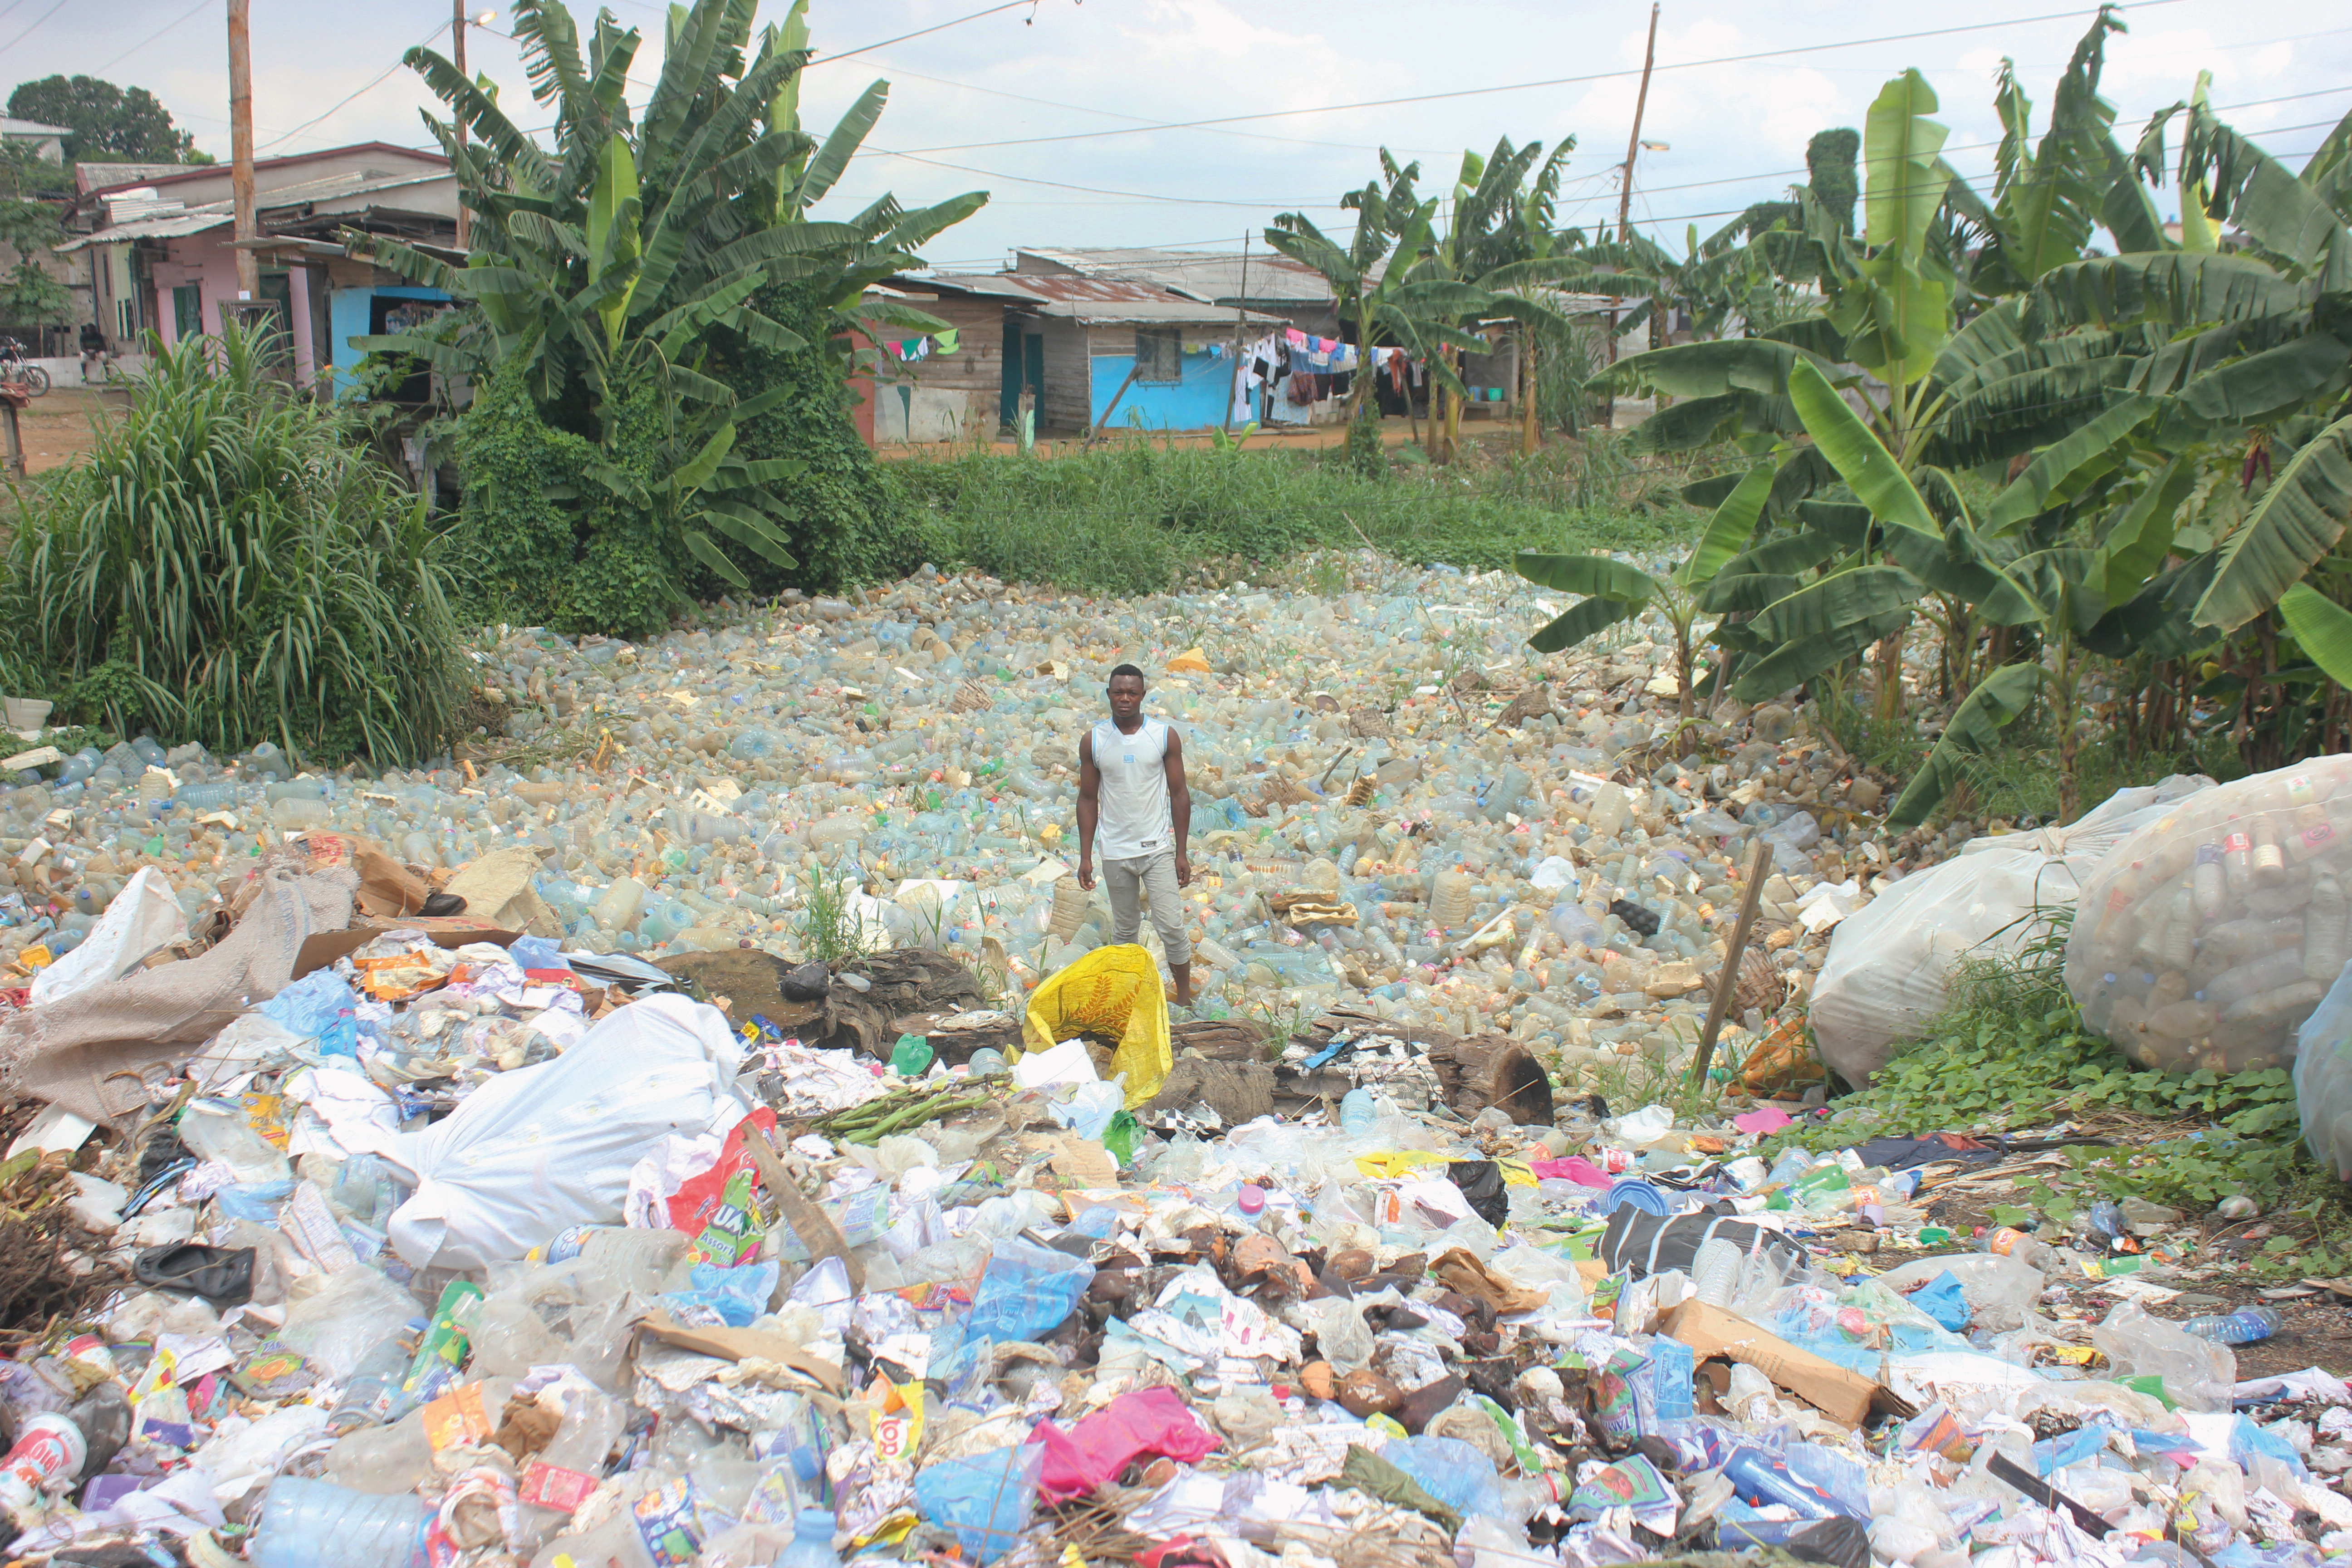 WasteAid appeal: Fighting plastic waste in lower income countries